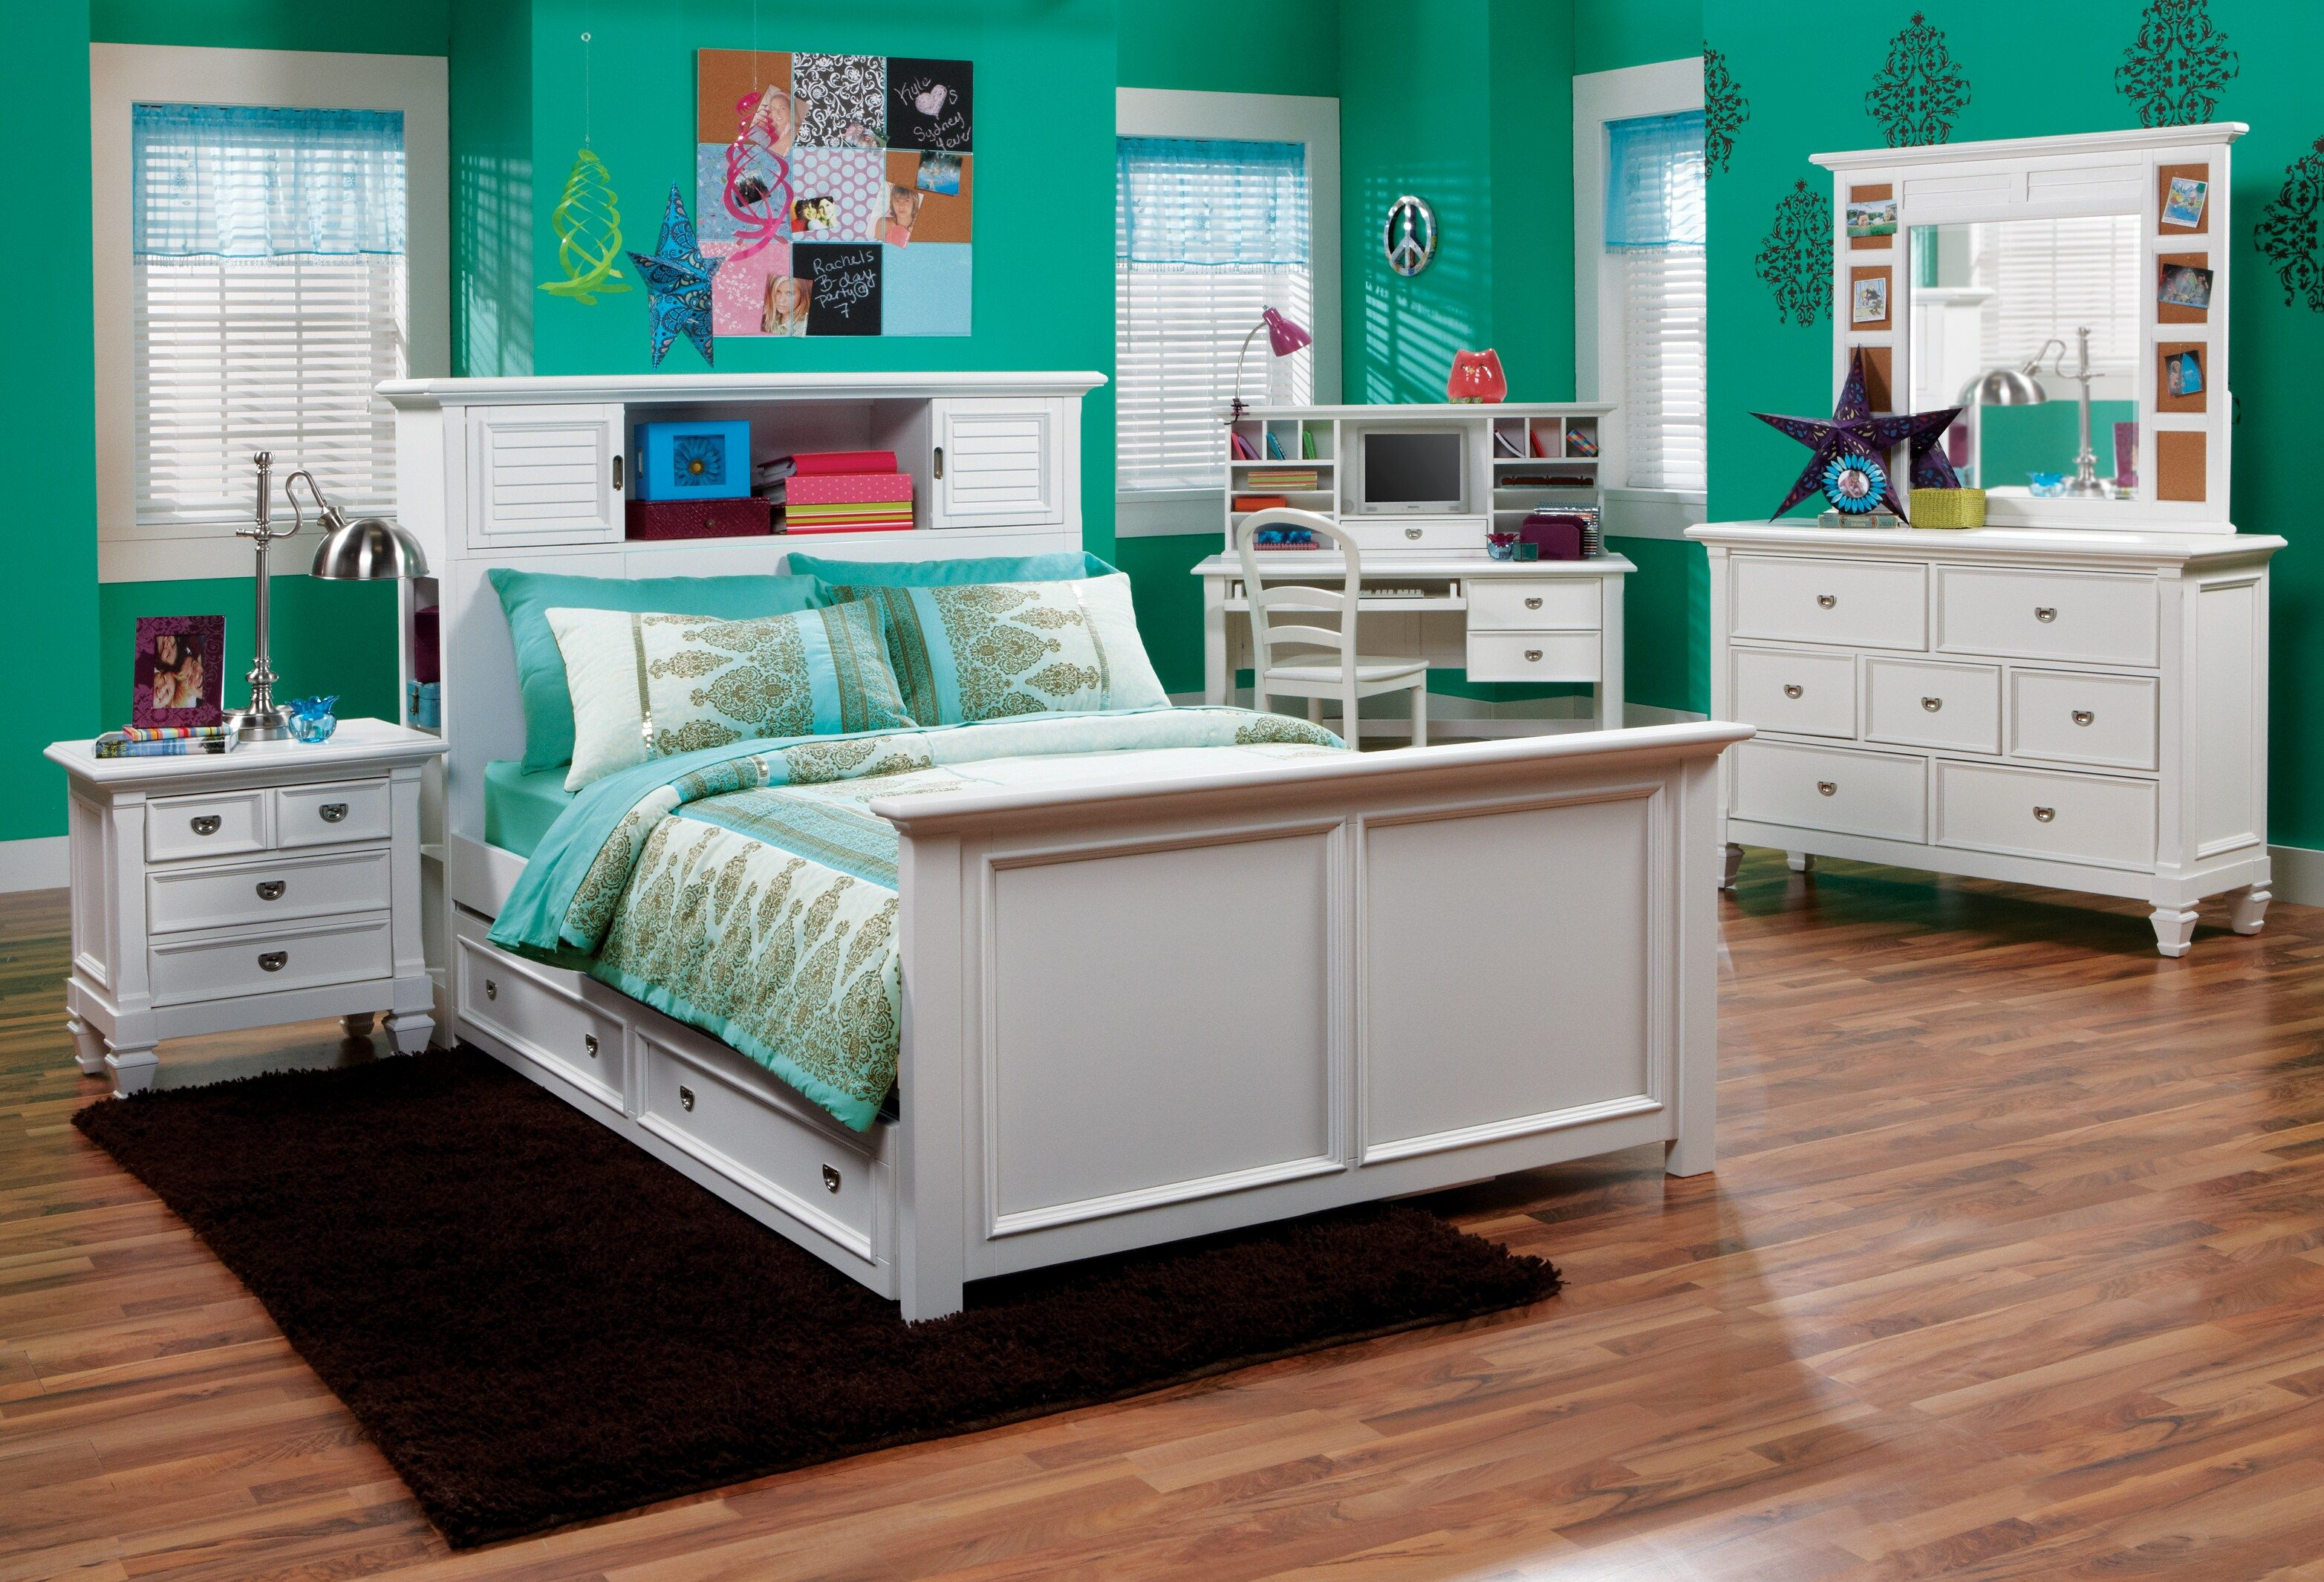 Pin On Kids Bedroom